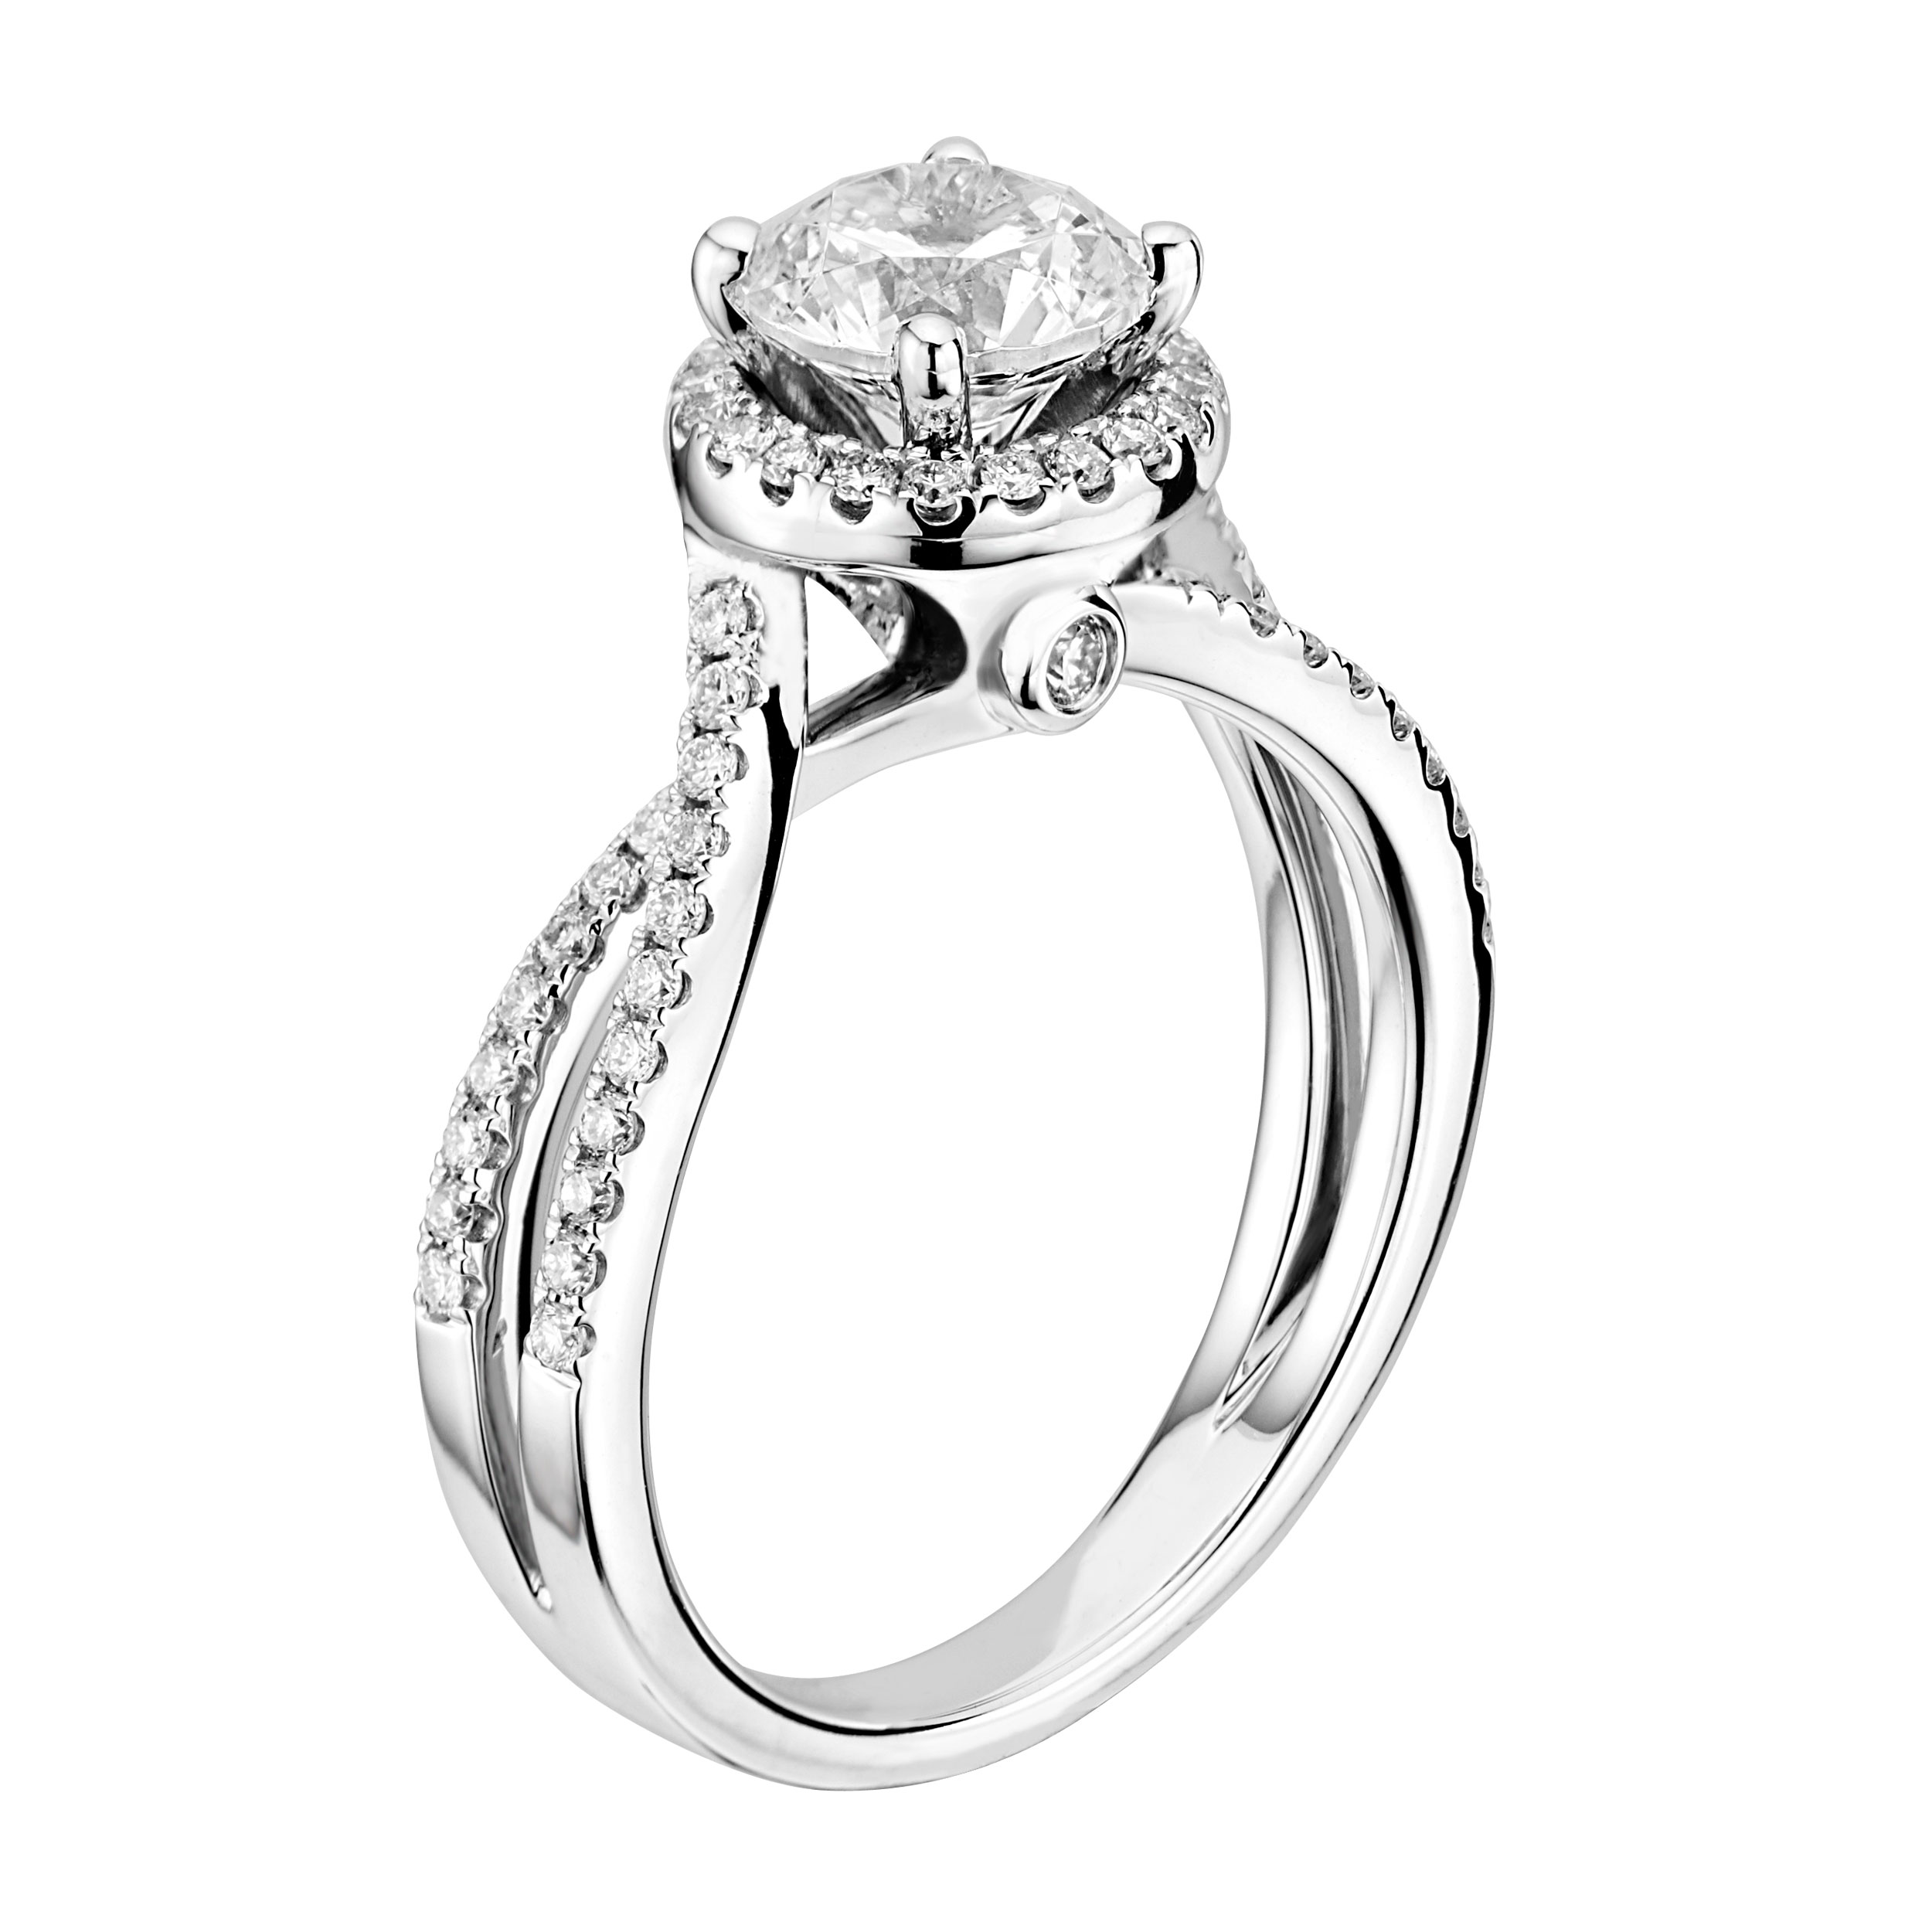 designer bridalshoweventspage november at jewelry parade diamonds engagement wedding and rings event ring tq bridal nov